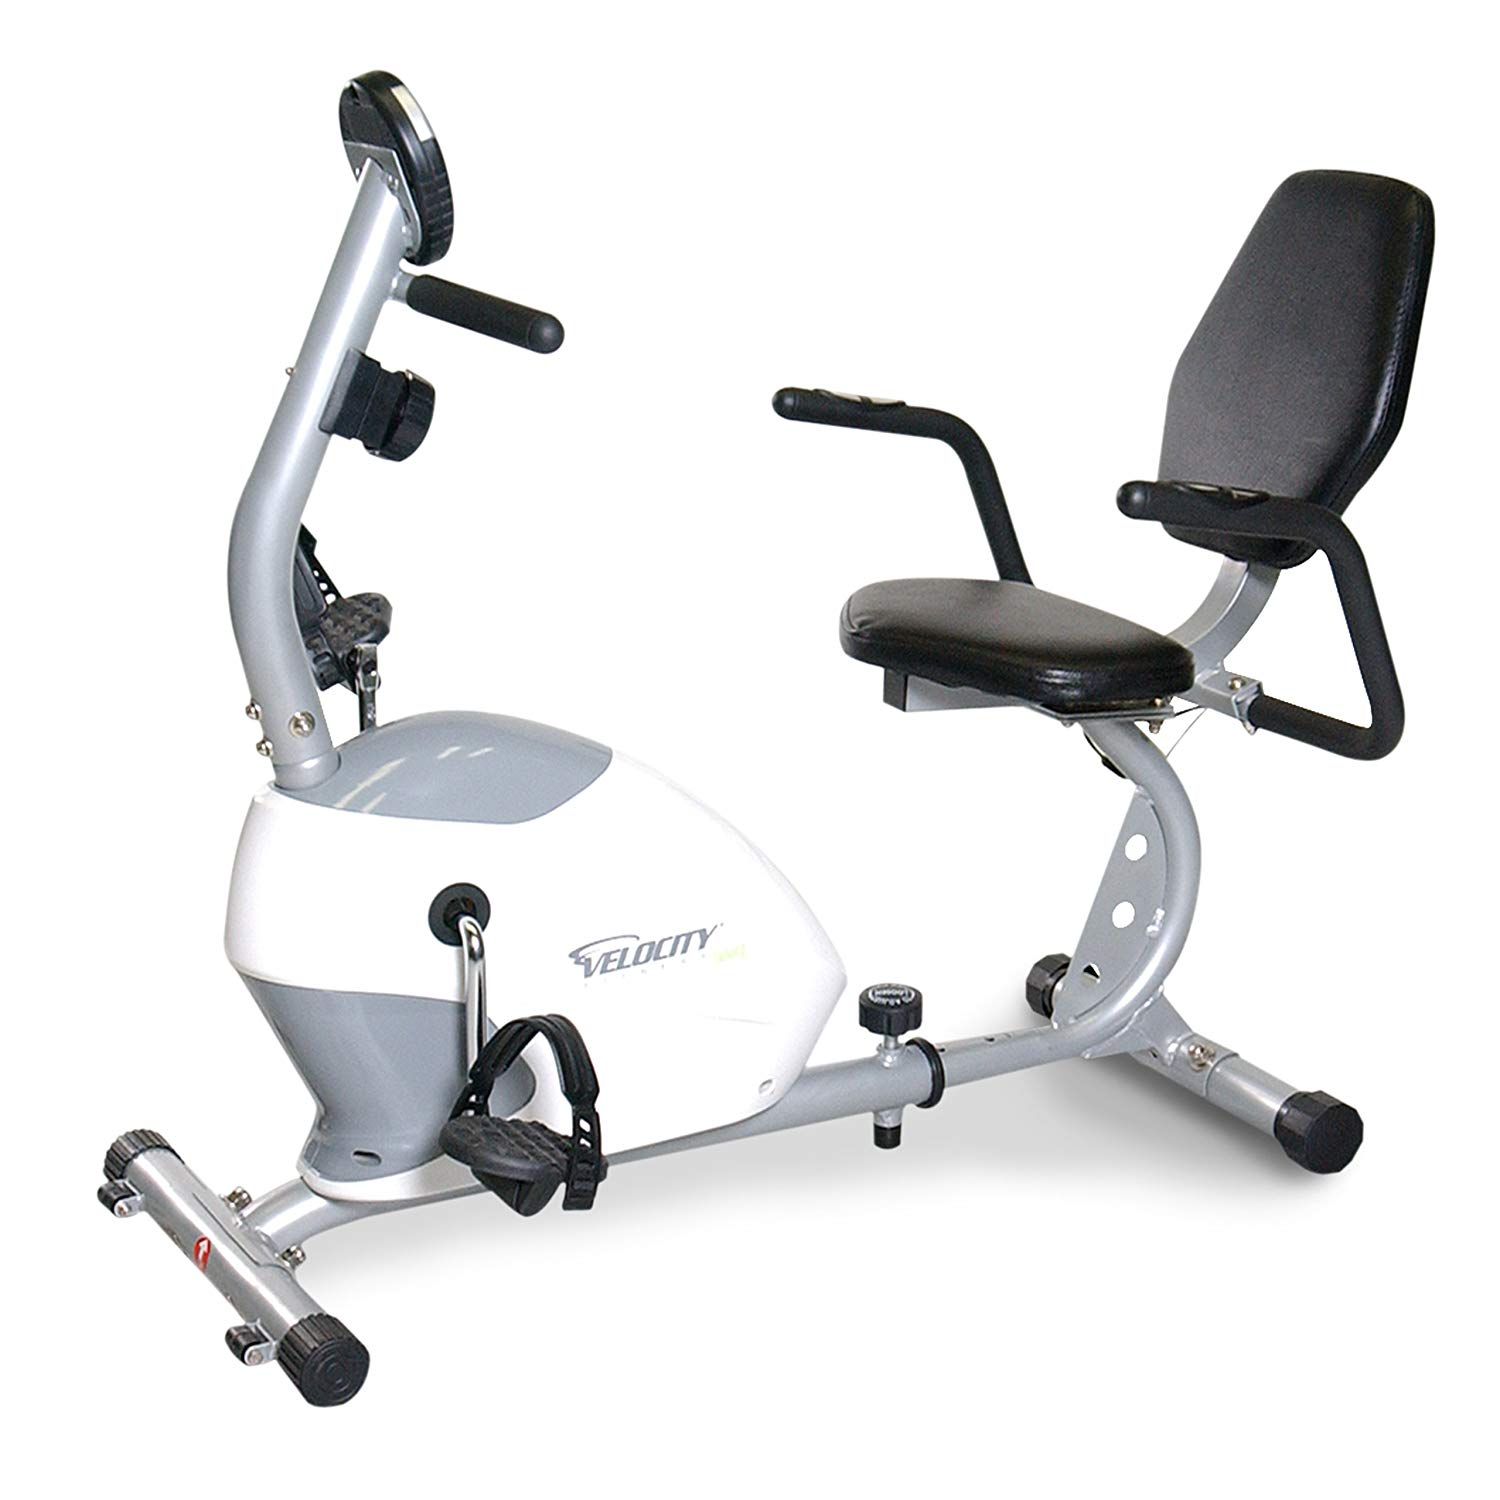 Velocity Exercise Recumbent Bike